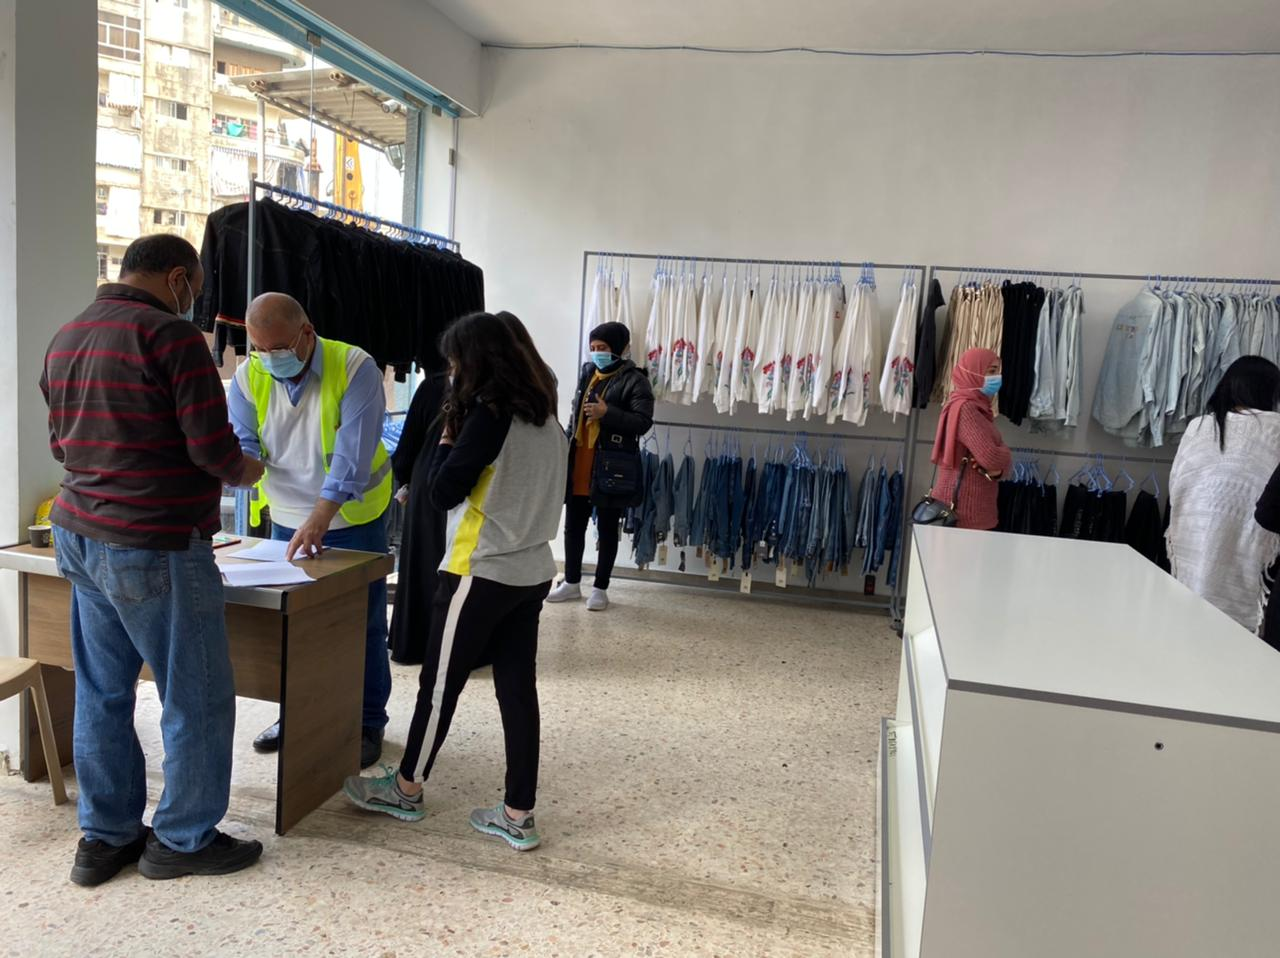 LLWB, Fabric Aid and Mission Joy distributed Levi's clothing